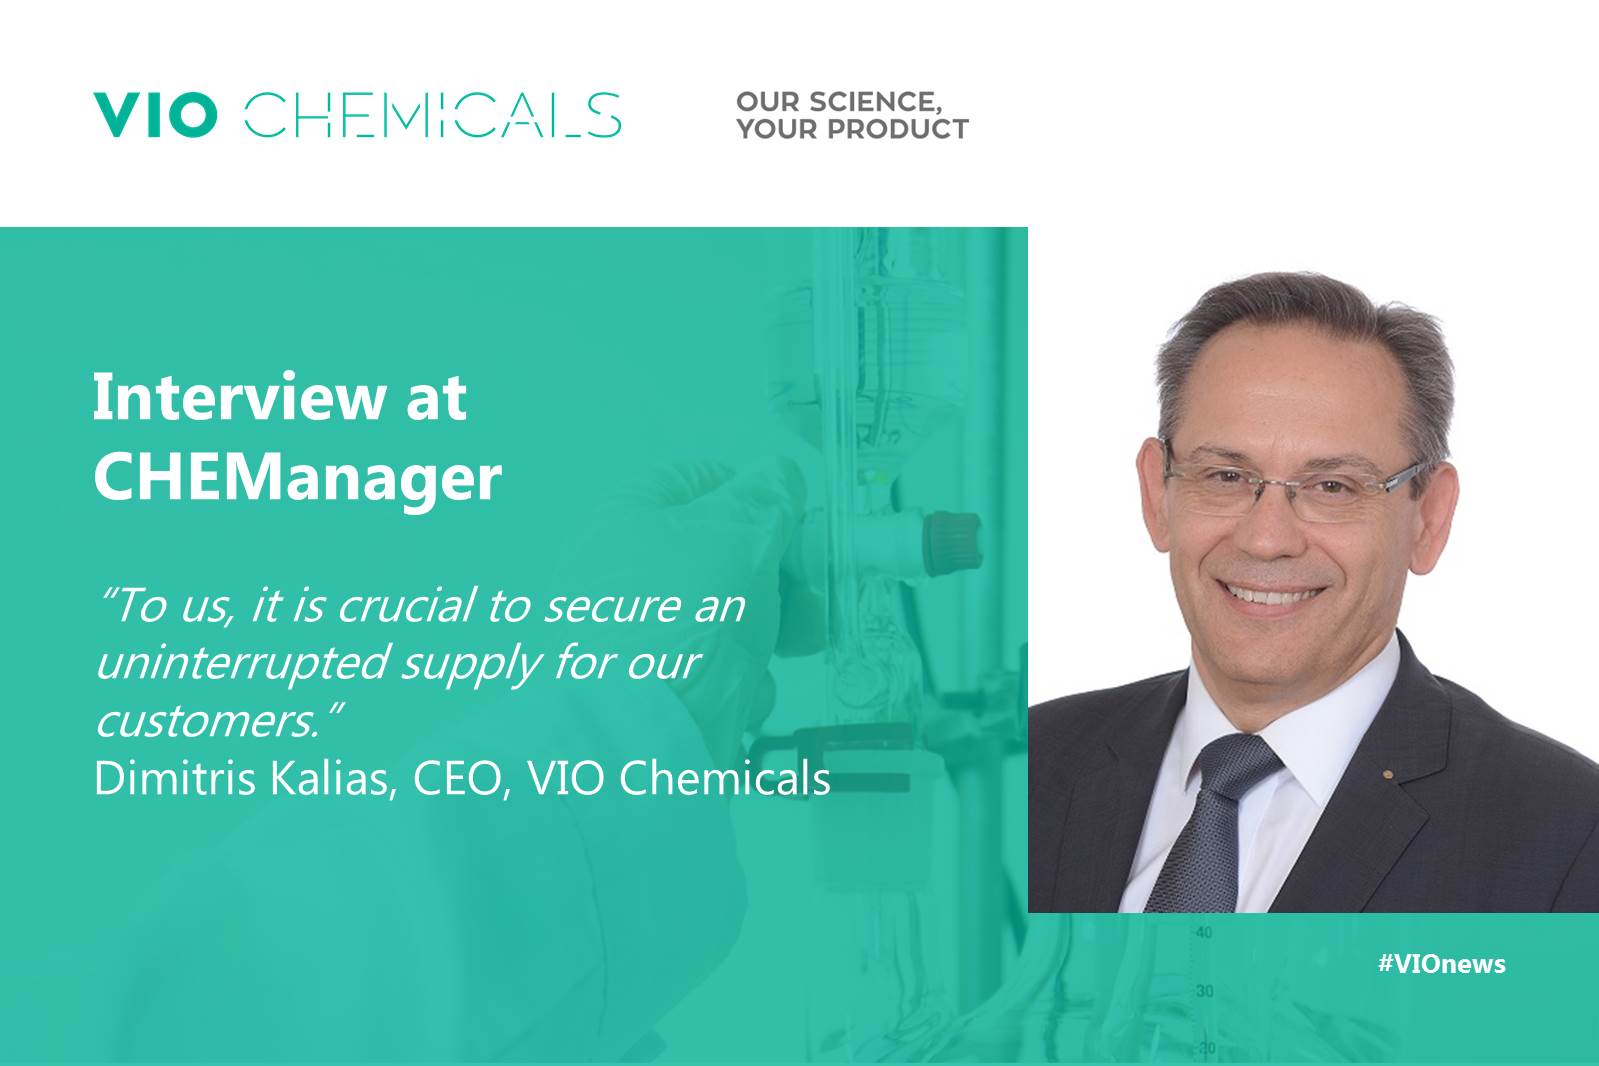 Dr. Kalias interview at CHEManager